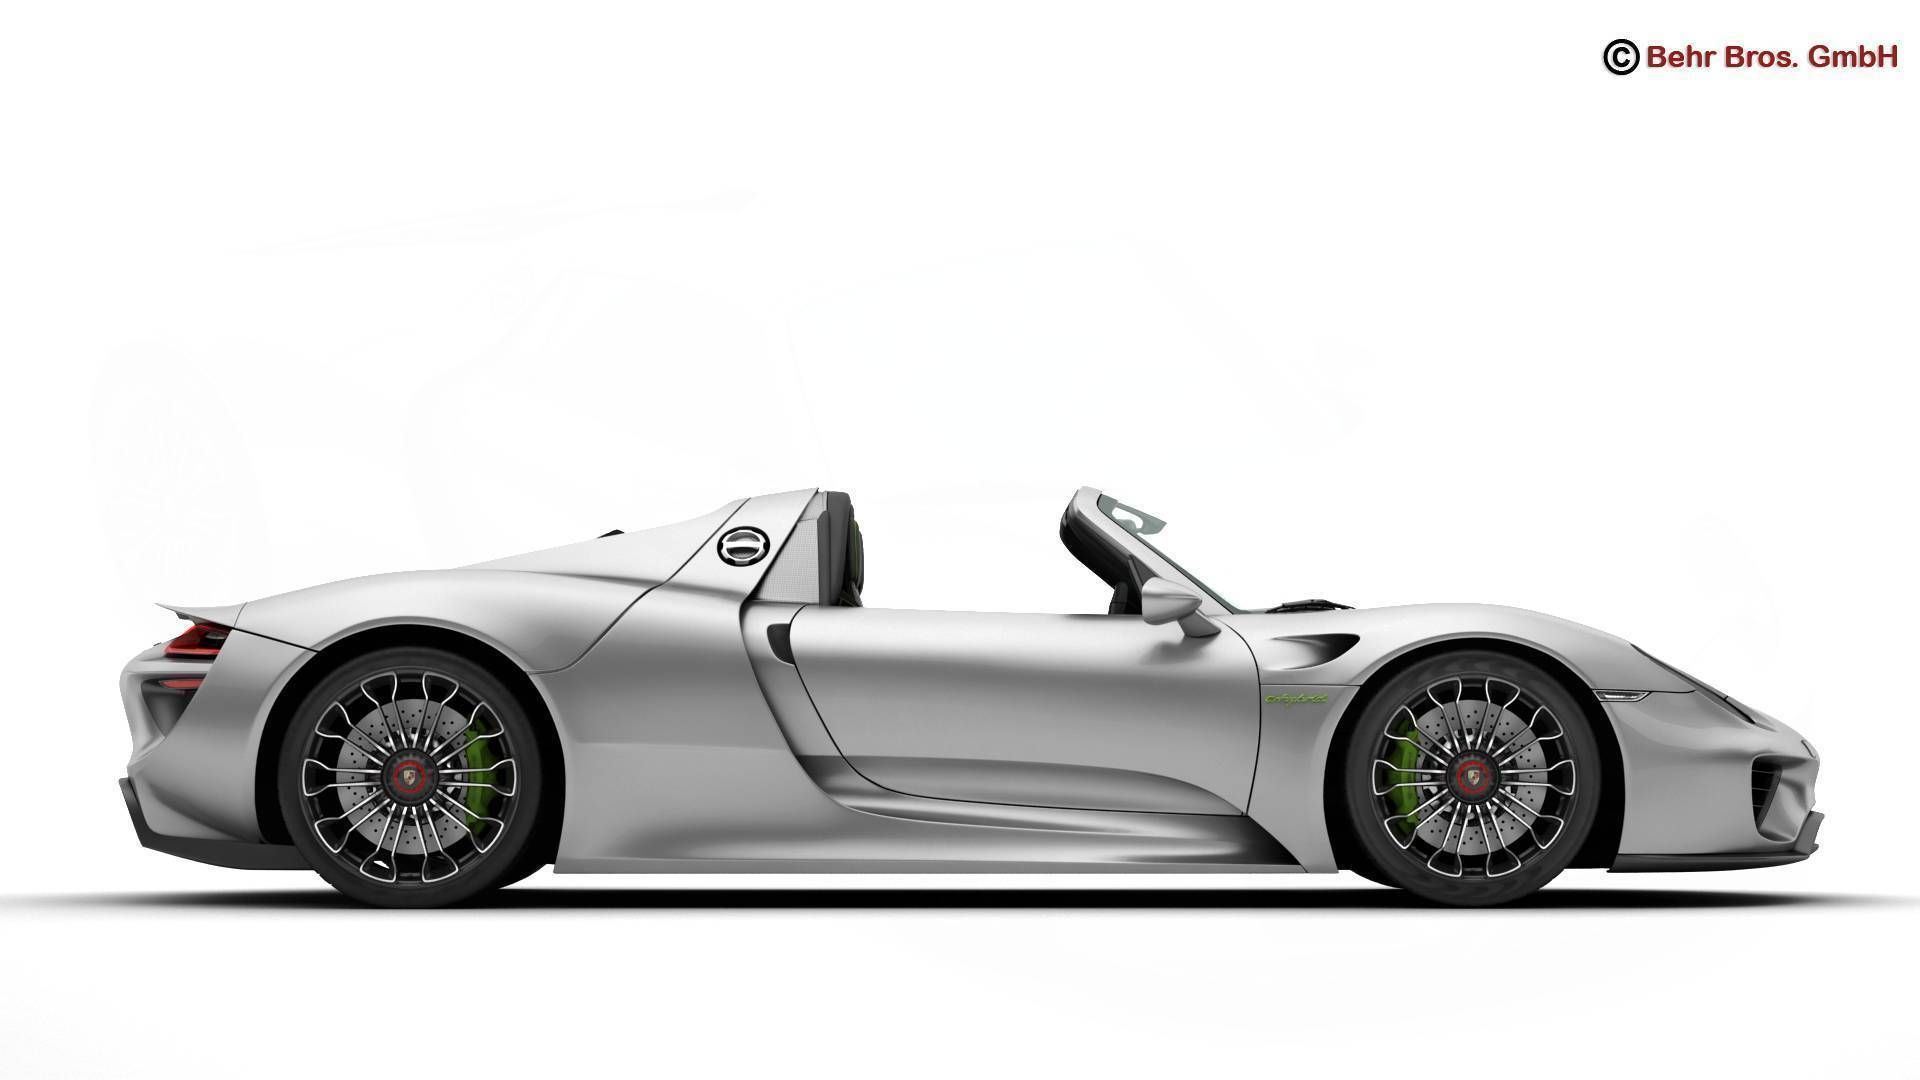 porsche 918 spyder including detachable roof 3d model max obj 3ds fbx c4d lwo lw lws. Black Bedroom Furniture Sets. Home Design Ideas